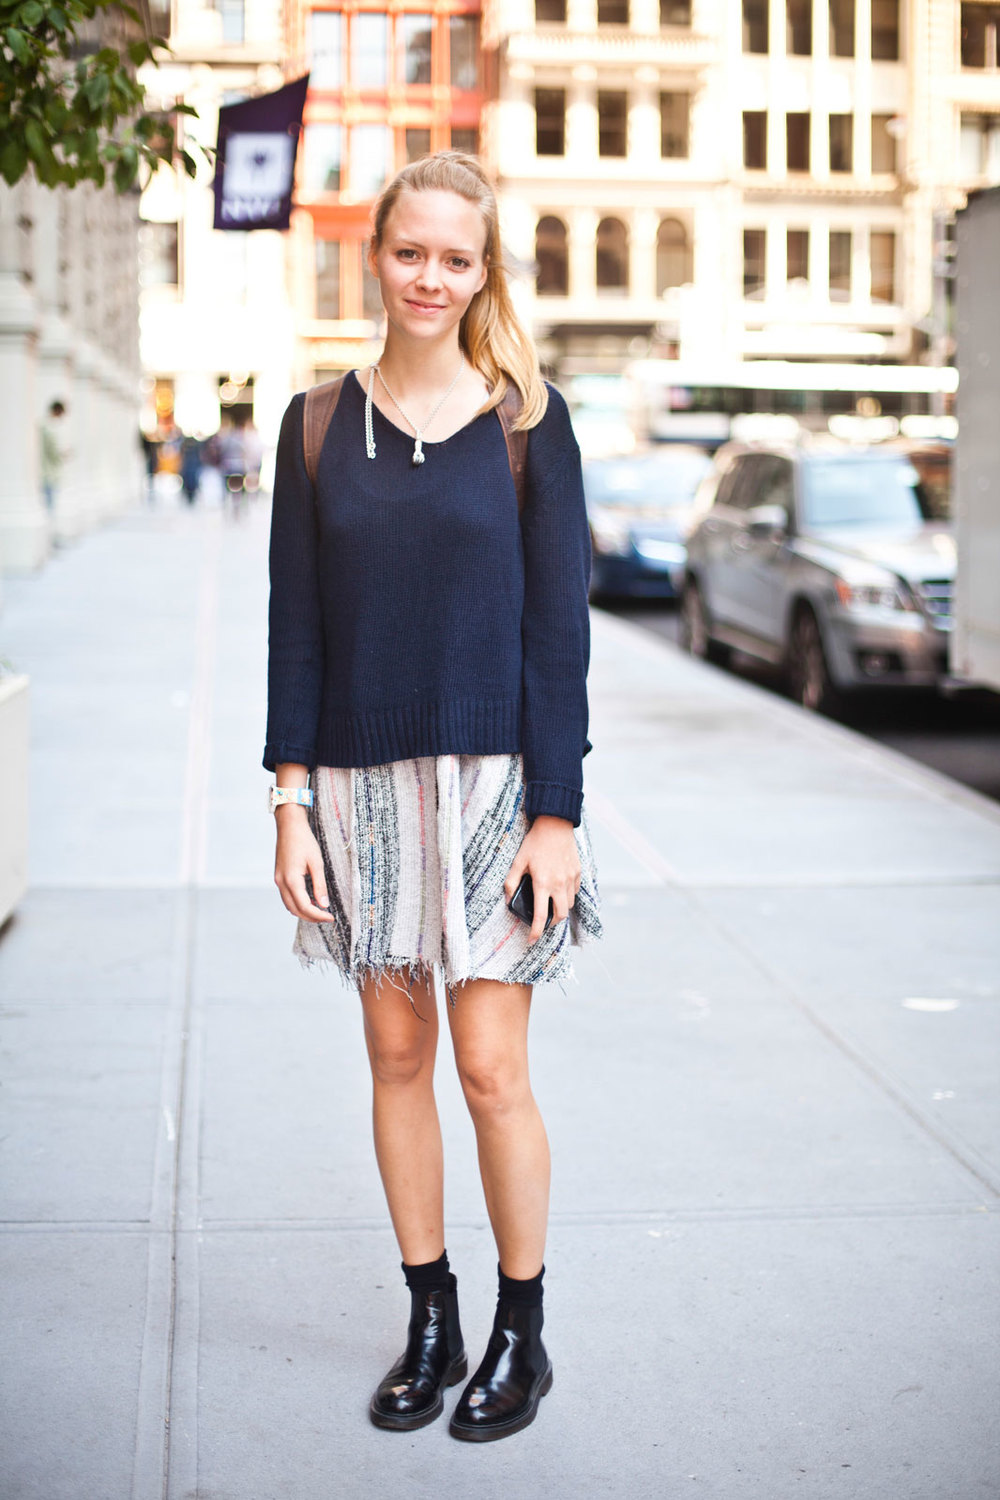 Louisa Nolte from NYU Free People dress and Swatch watch.